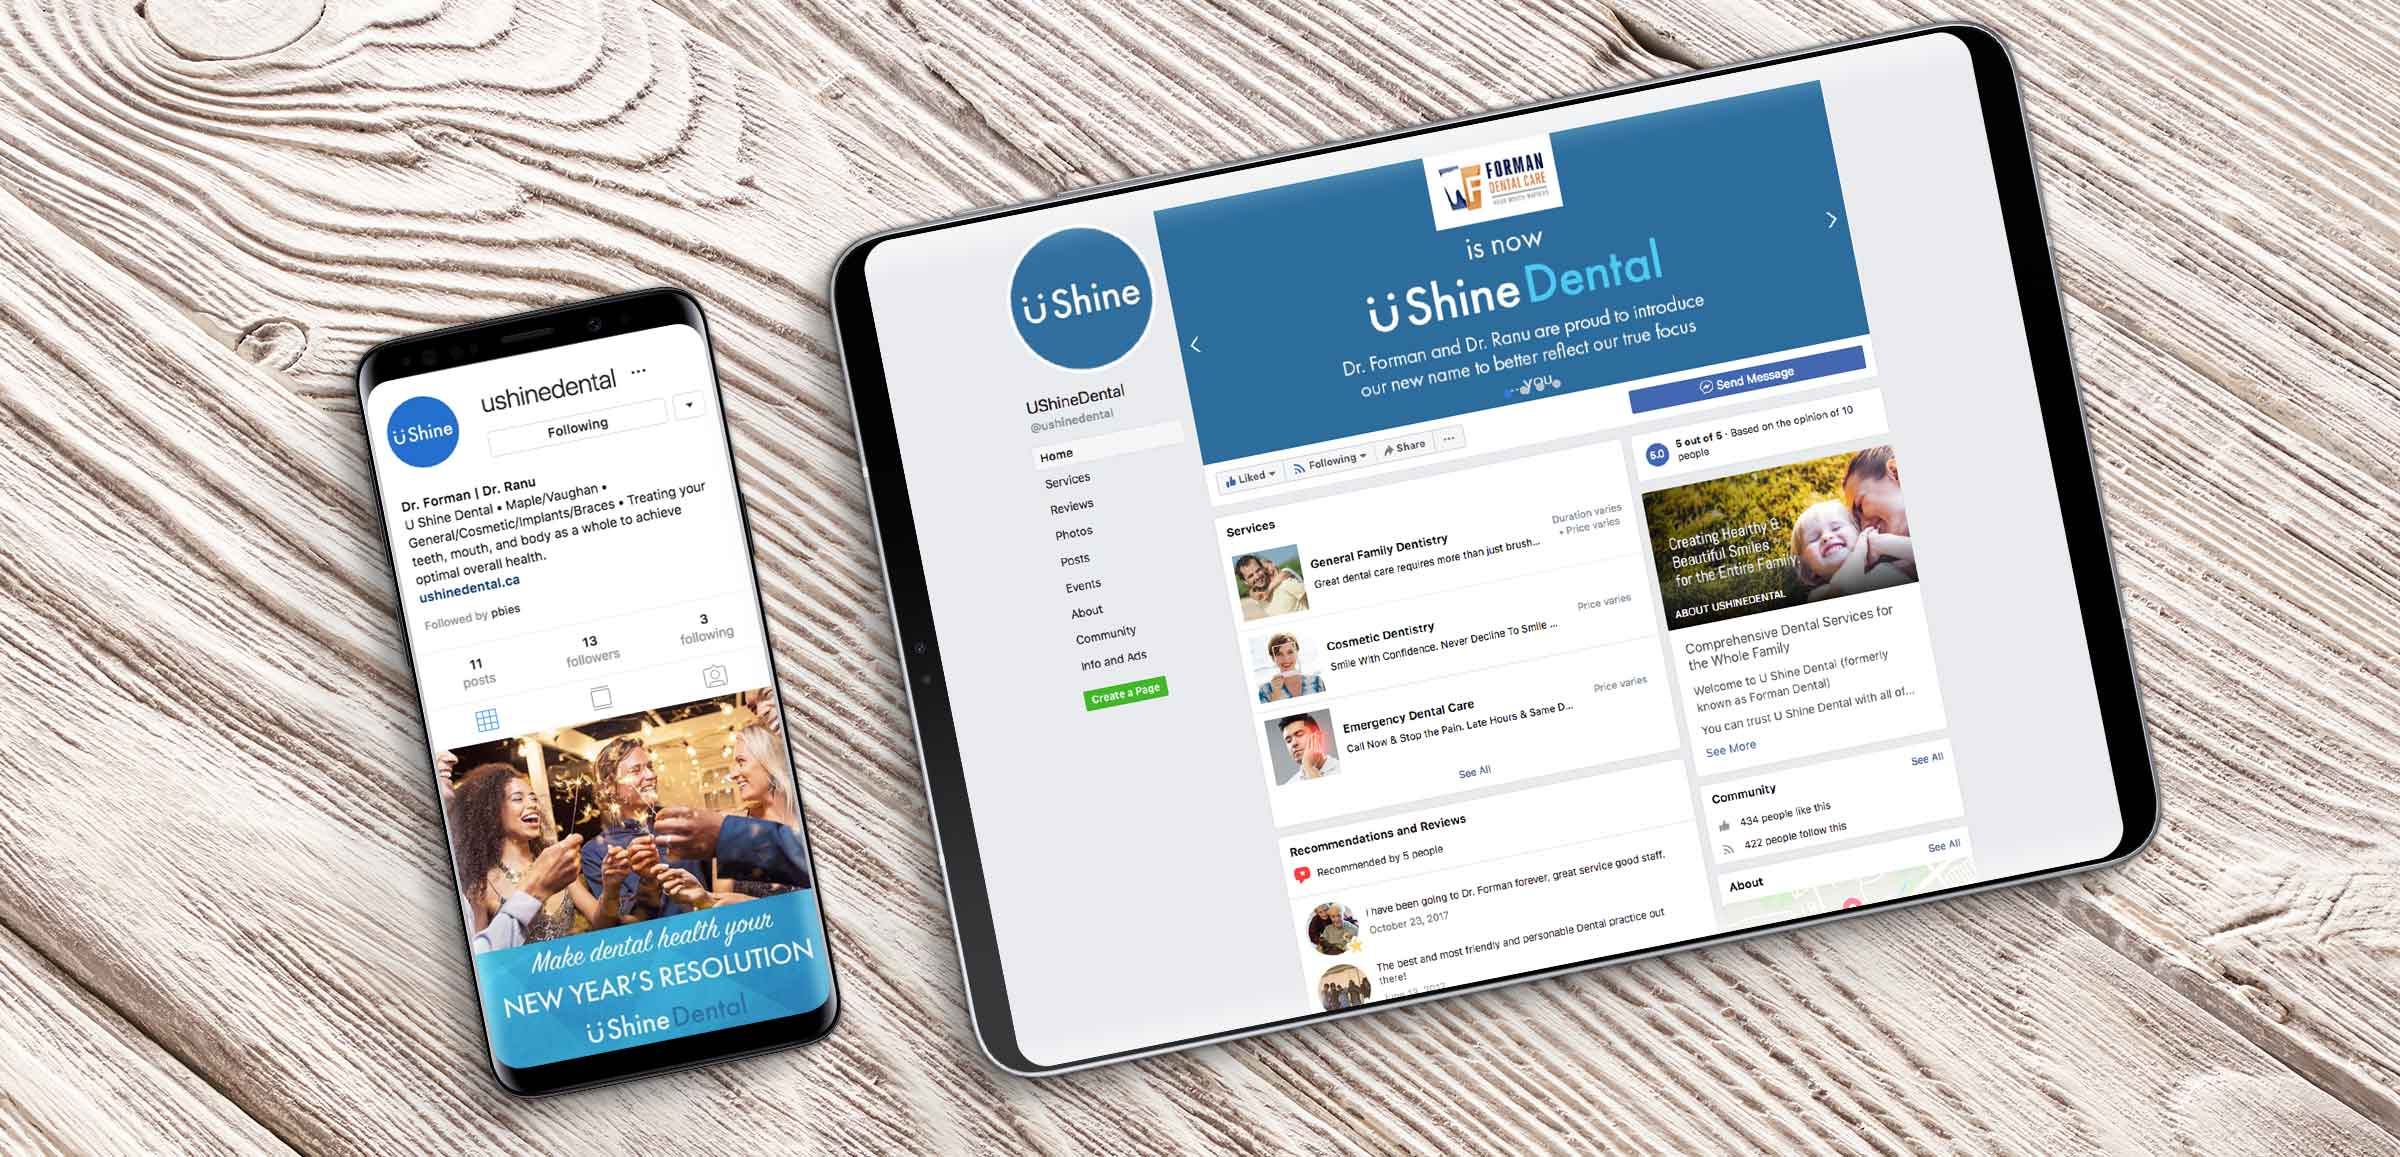 U-shine-dental-social-media